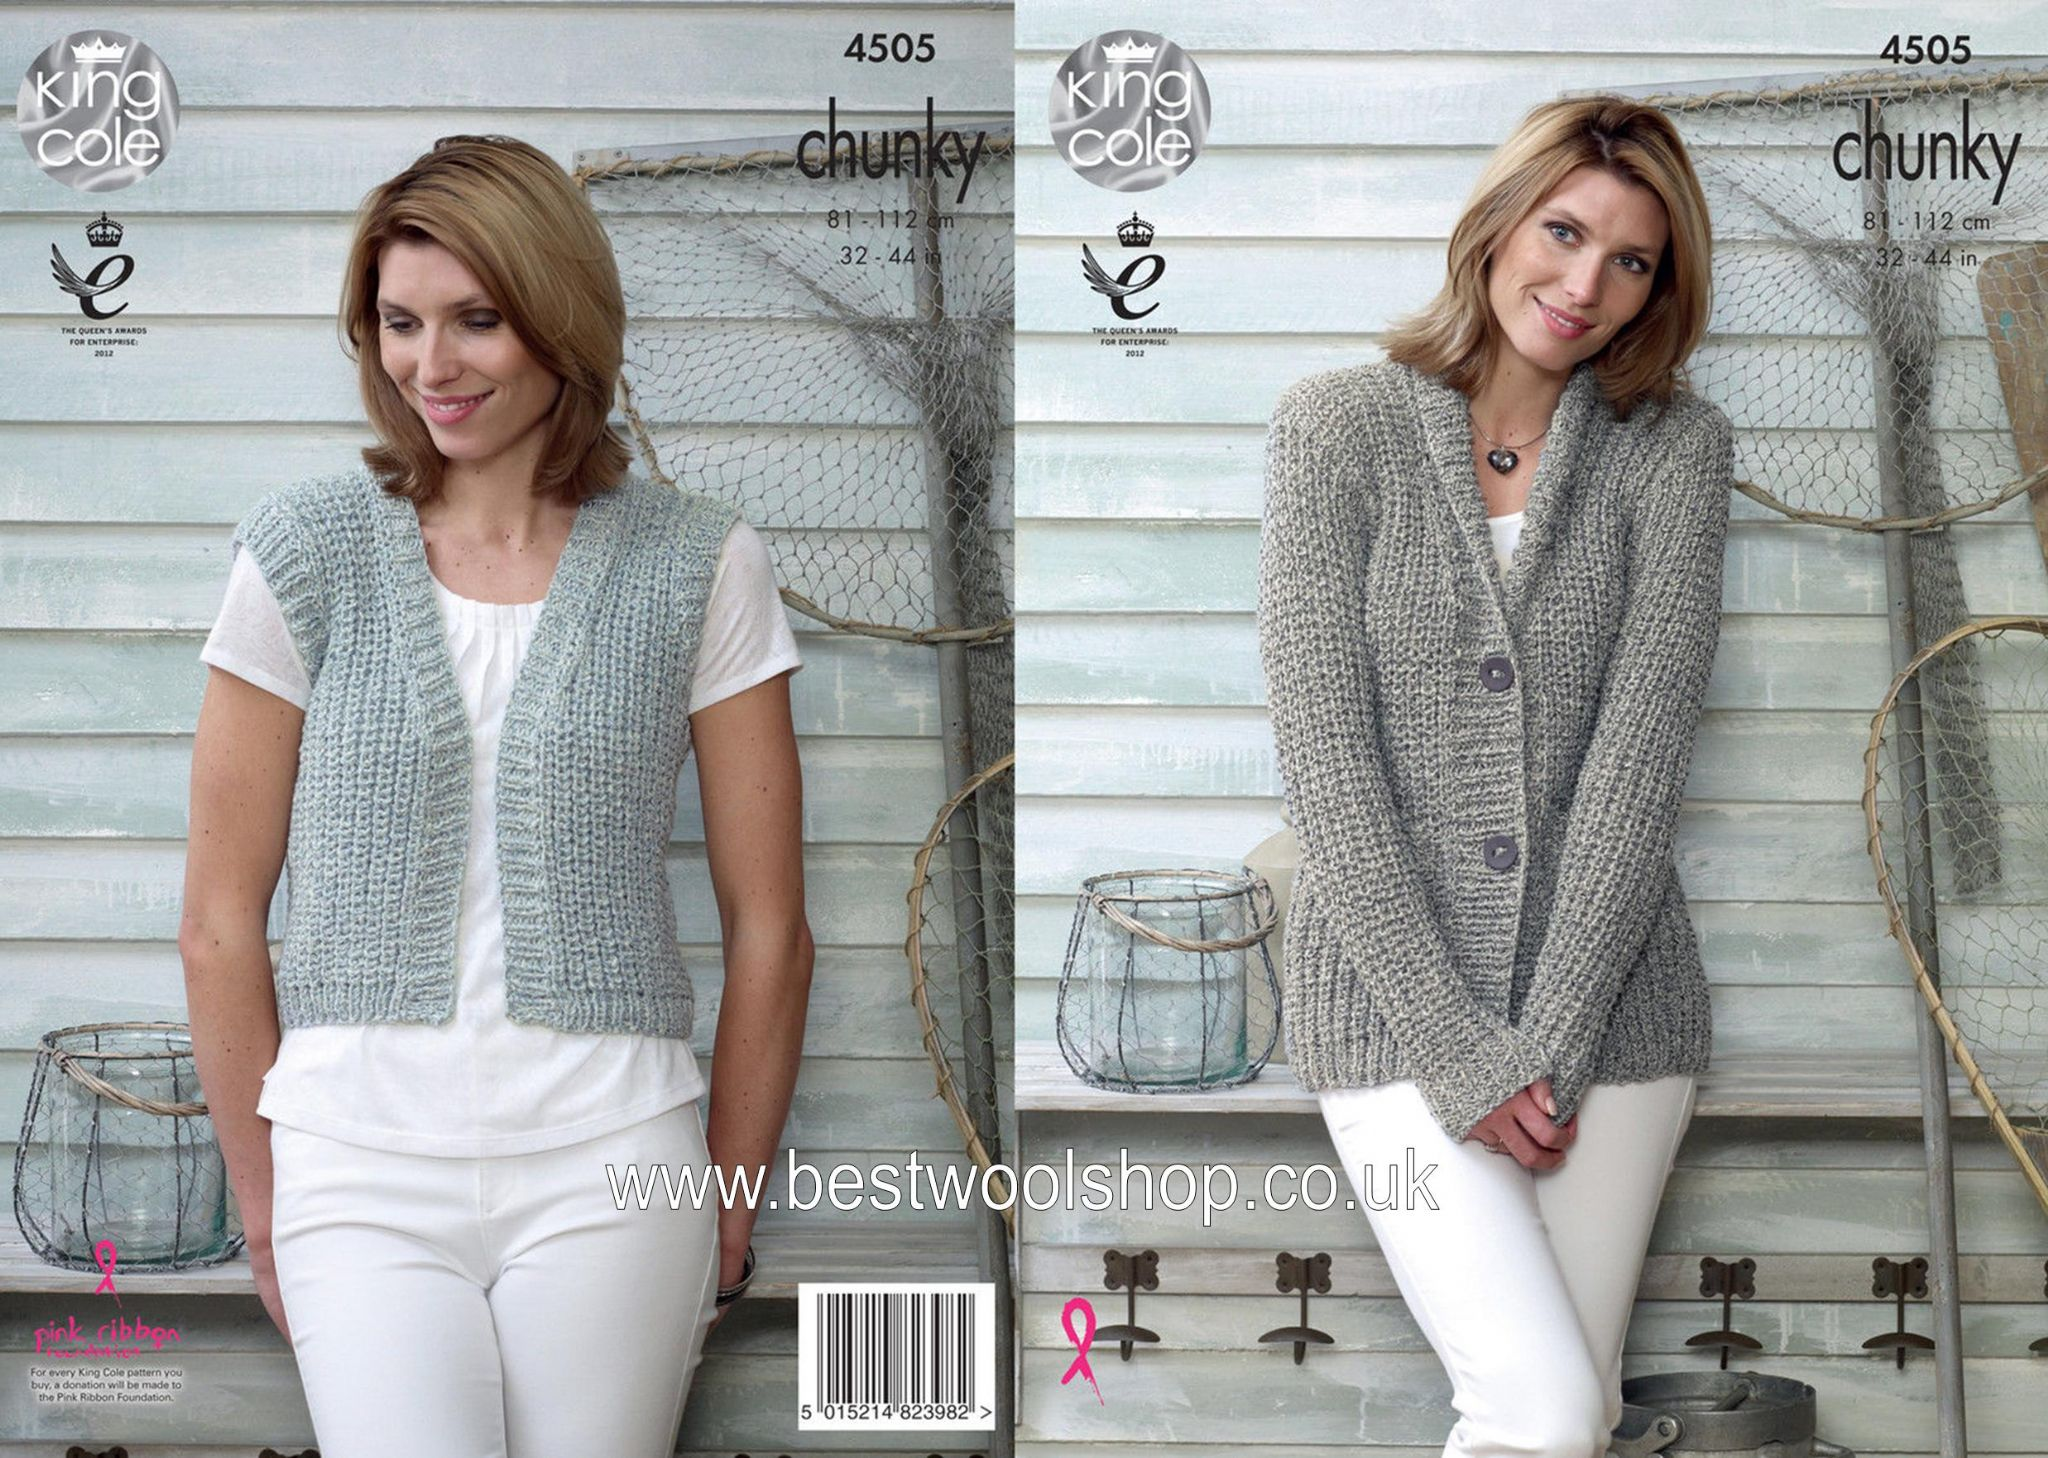 4505 king cole authentic chunky shawl collar cardigan jacket 4505 king cole authentic chunky shawl collar cardigan jacket waistcoat gilet knitting pattern bankloansurffo Gallery